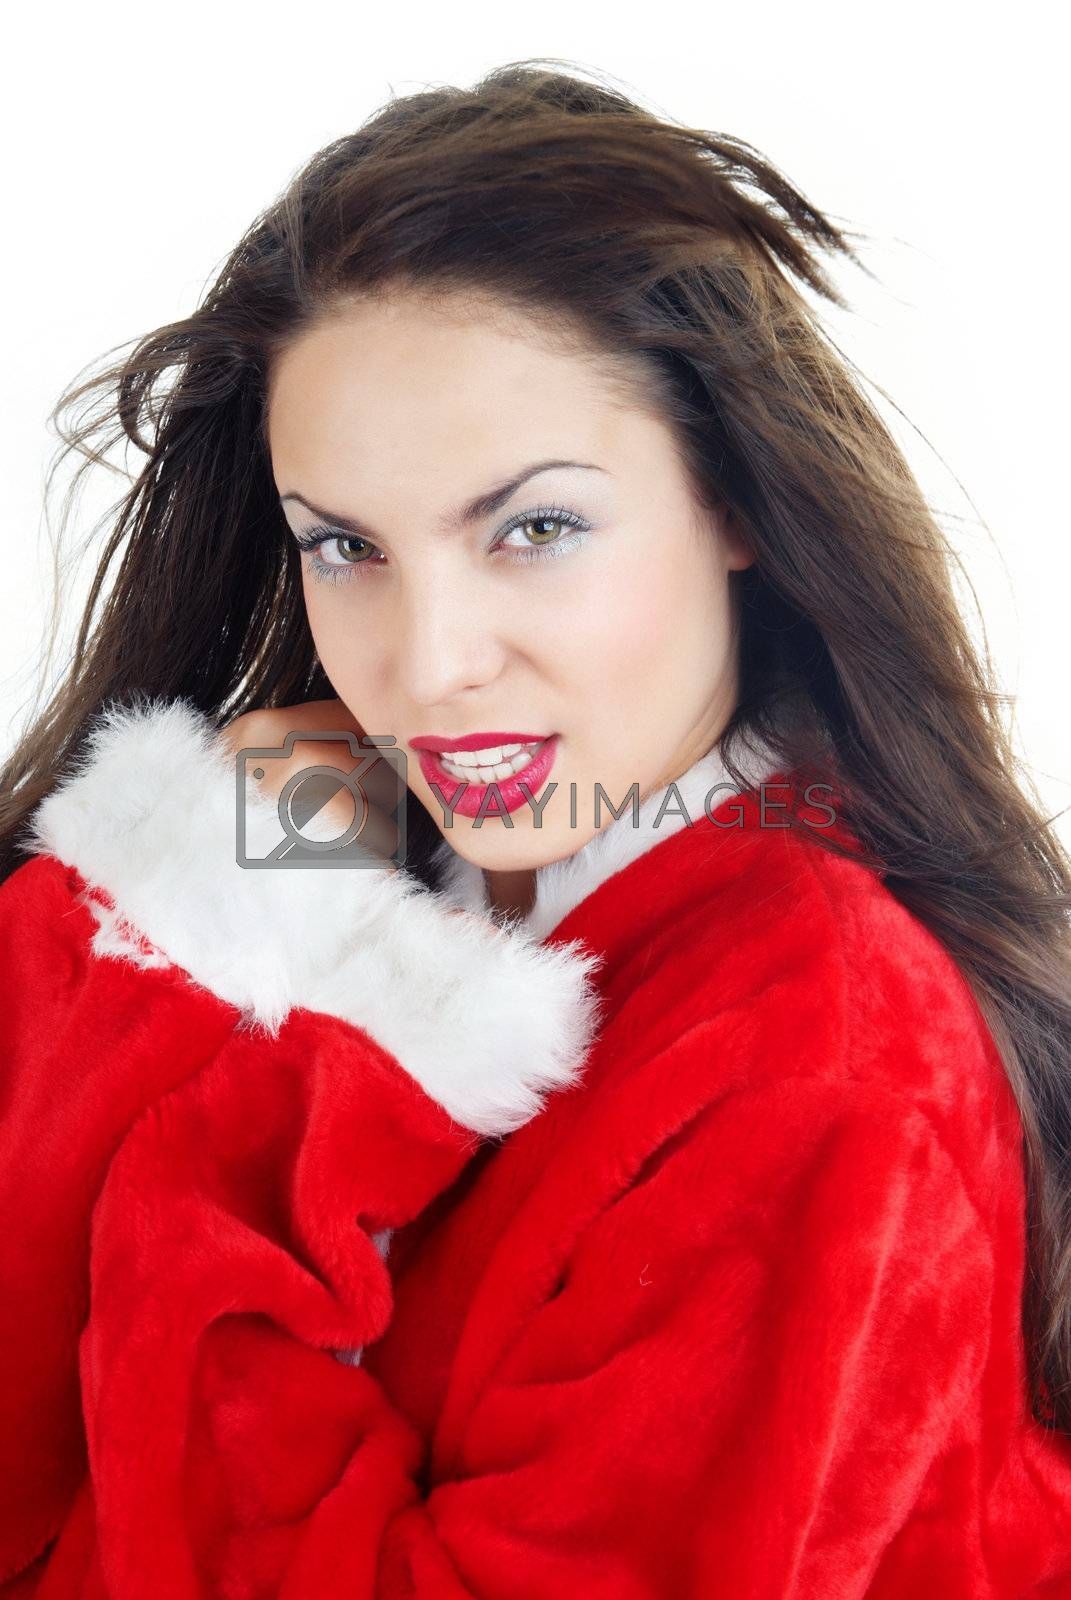 Attractive lady with blown hairs in the red furry Santa Claus costume on a white background